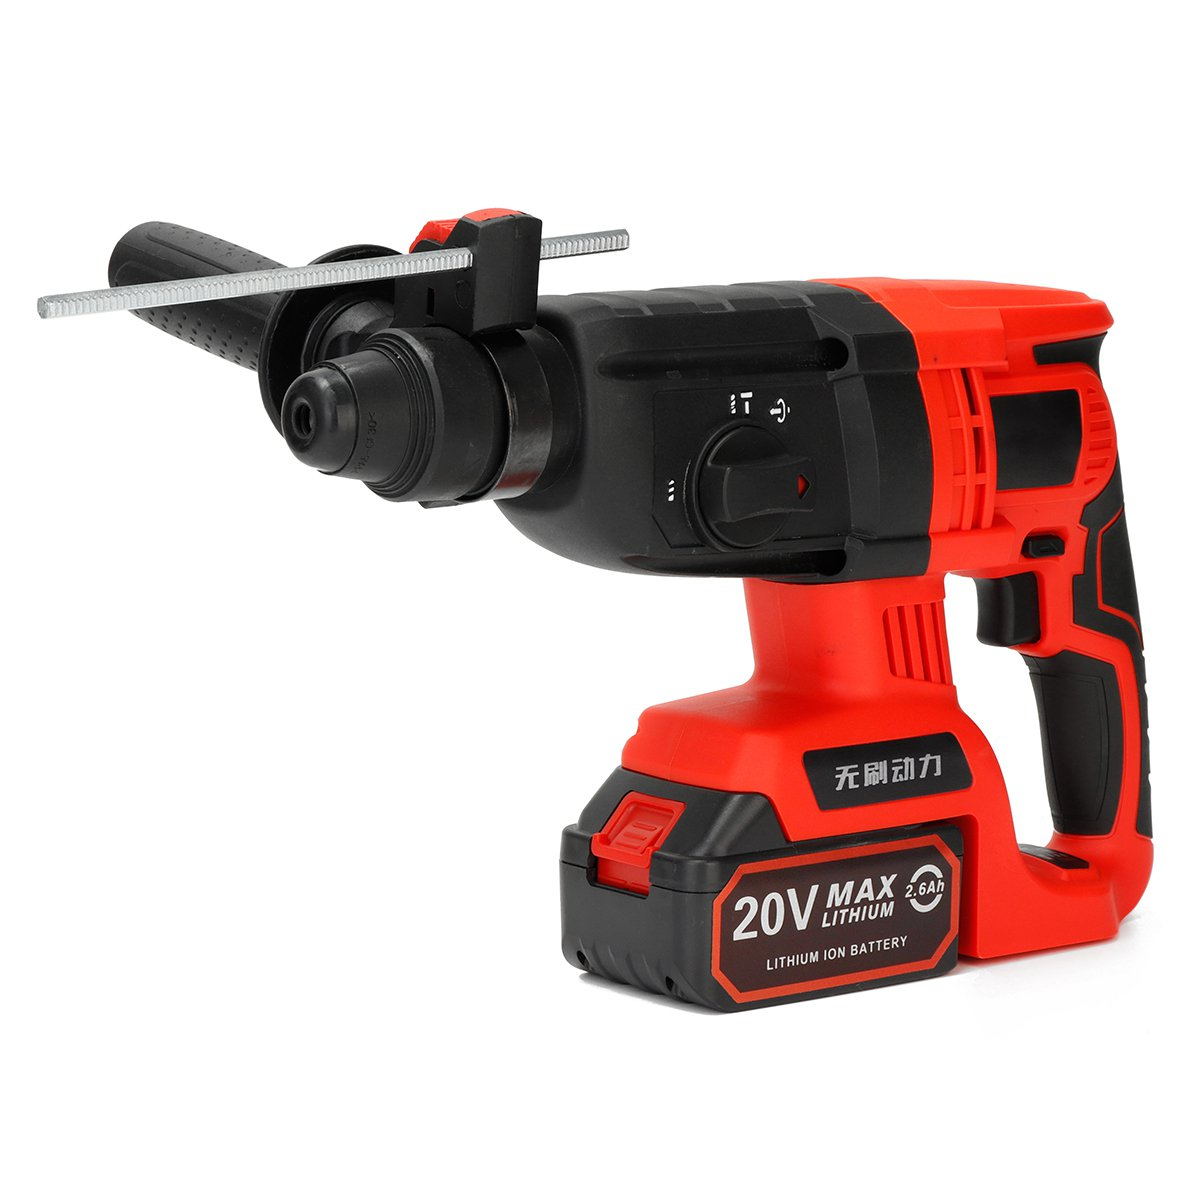 220V 20mm Multi-Functions Electric Rotary Hammer 20V with 1/2 2.6Ah Li Battery Impact Drill Power Tool Drill Electric Drill220V 20mm Multi-Functions Electric Rotary Hammer 20V with 1/2 2.6Ah Li Battery Impact Drill Power Tool Drill Electric Drill